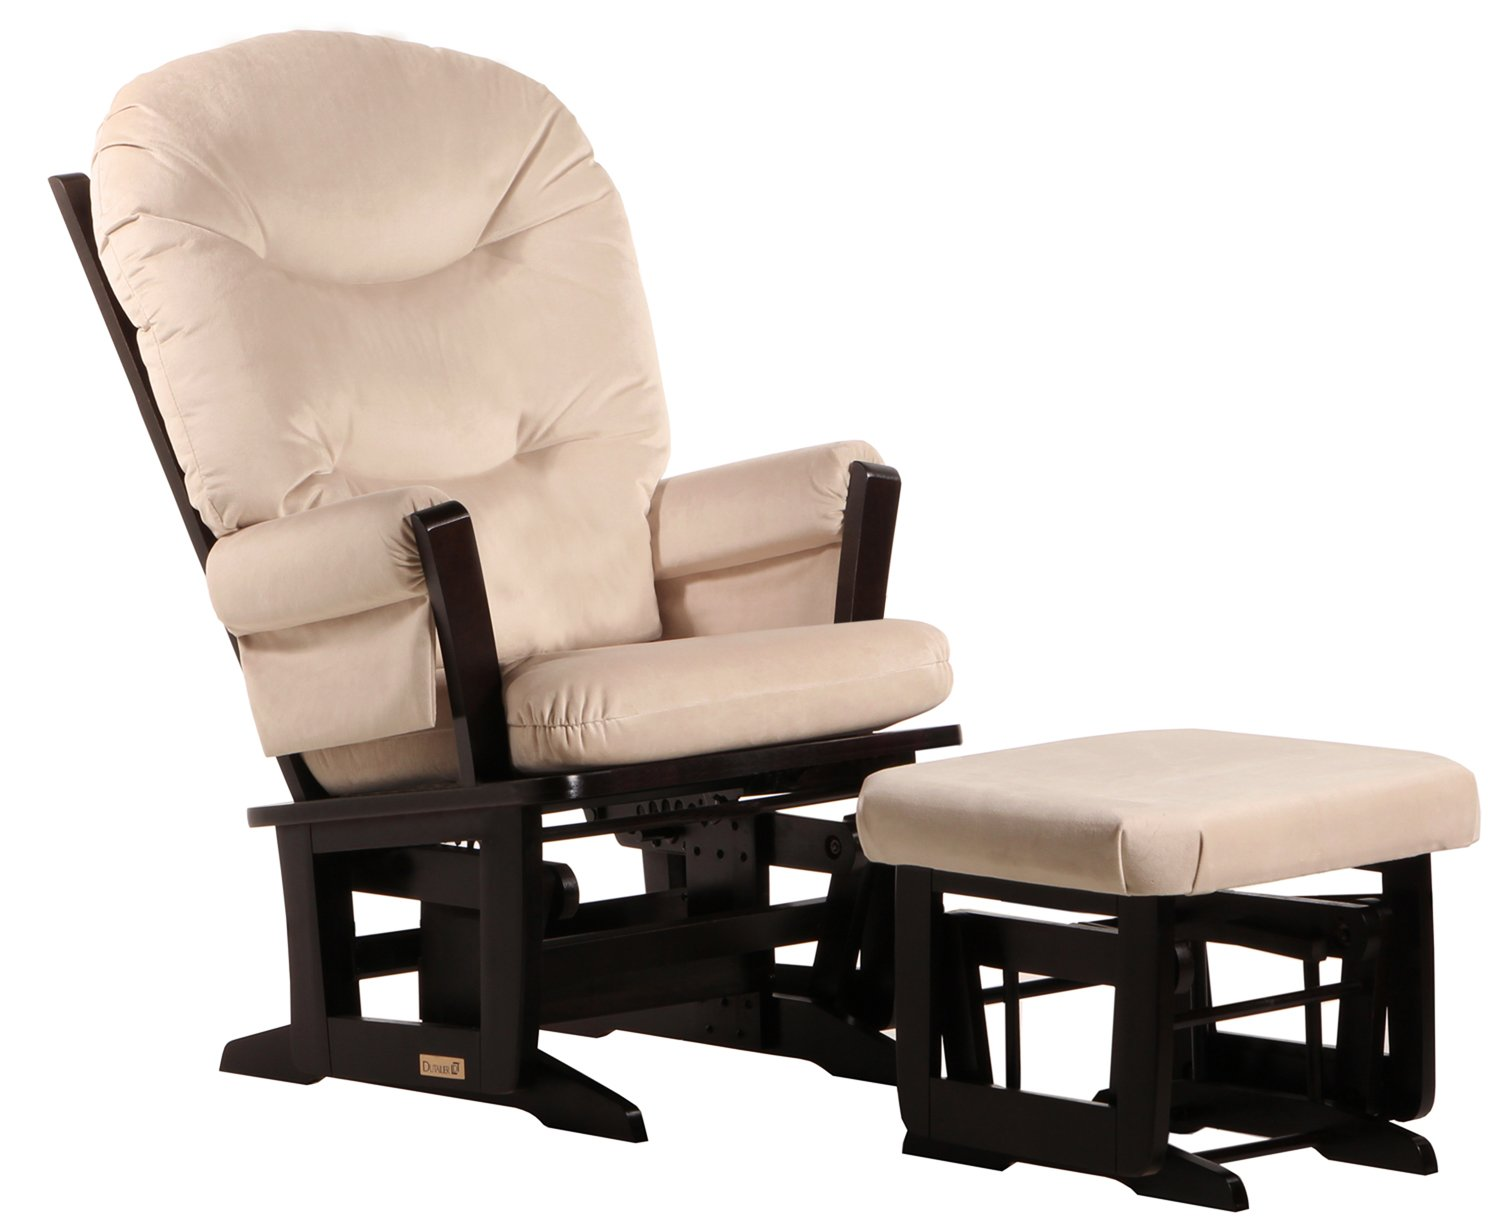 Best Rated In Glider Chairs, Ottomans, & Rocking Chairs